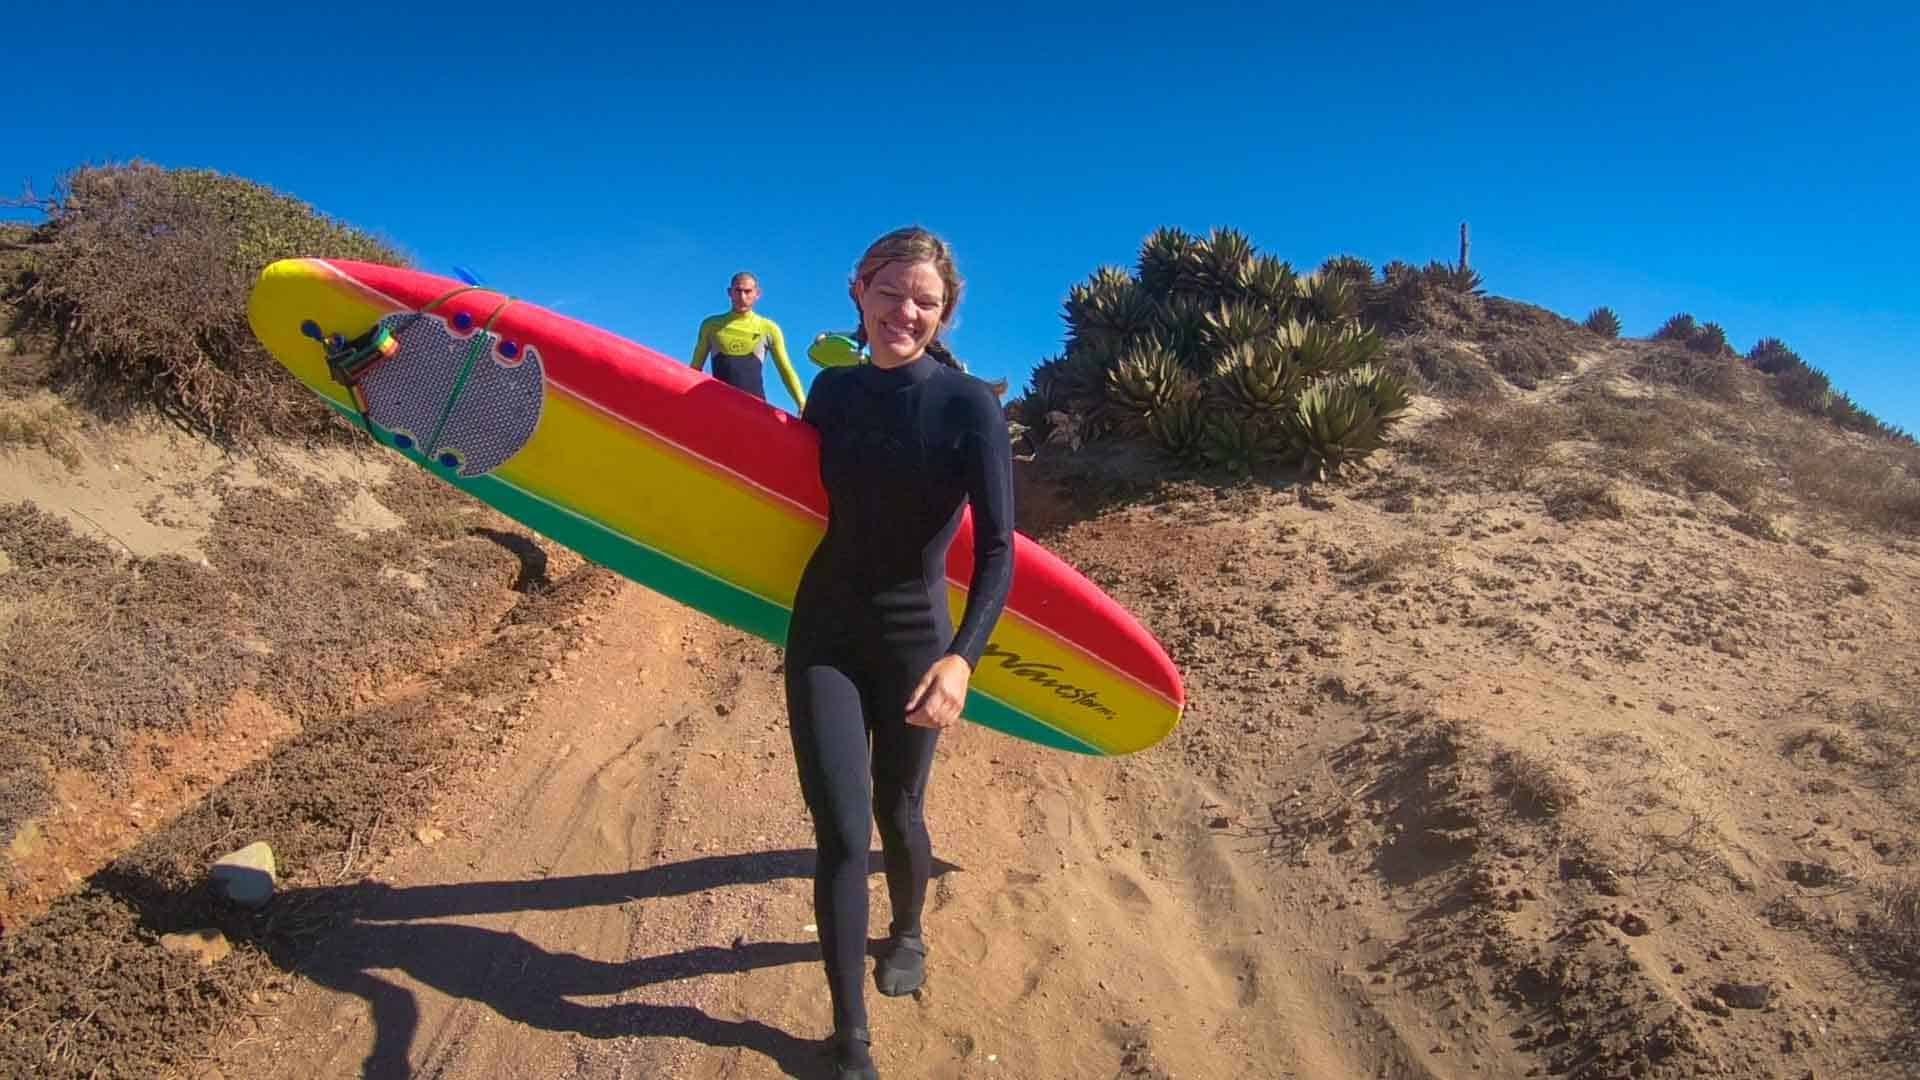 Adventure-in-a-backpack-baja-california-surf-tour-42